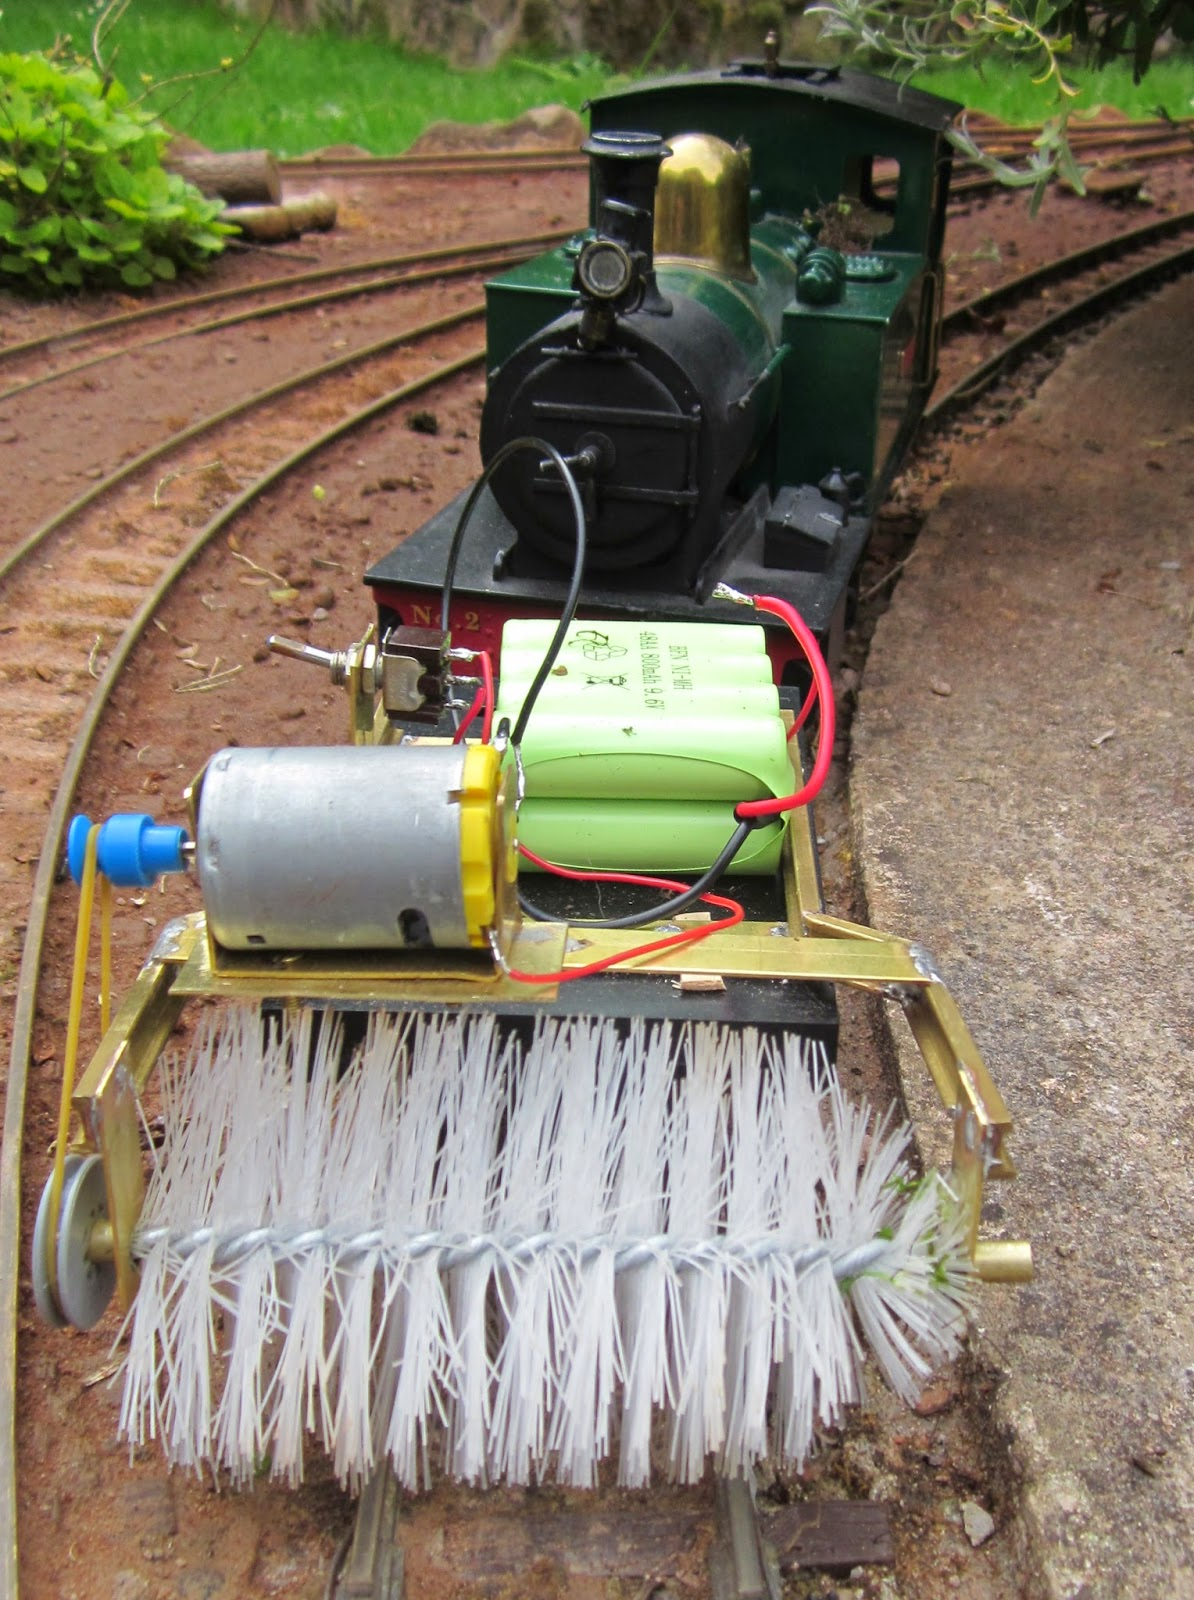 medium resolution of i ve found that the brush is a little too wide which means that on some stretches of track the pulley becomes entangled in the undergrowth